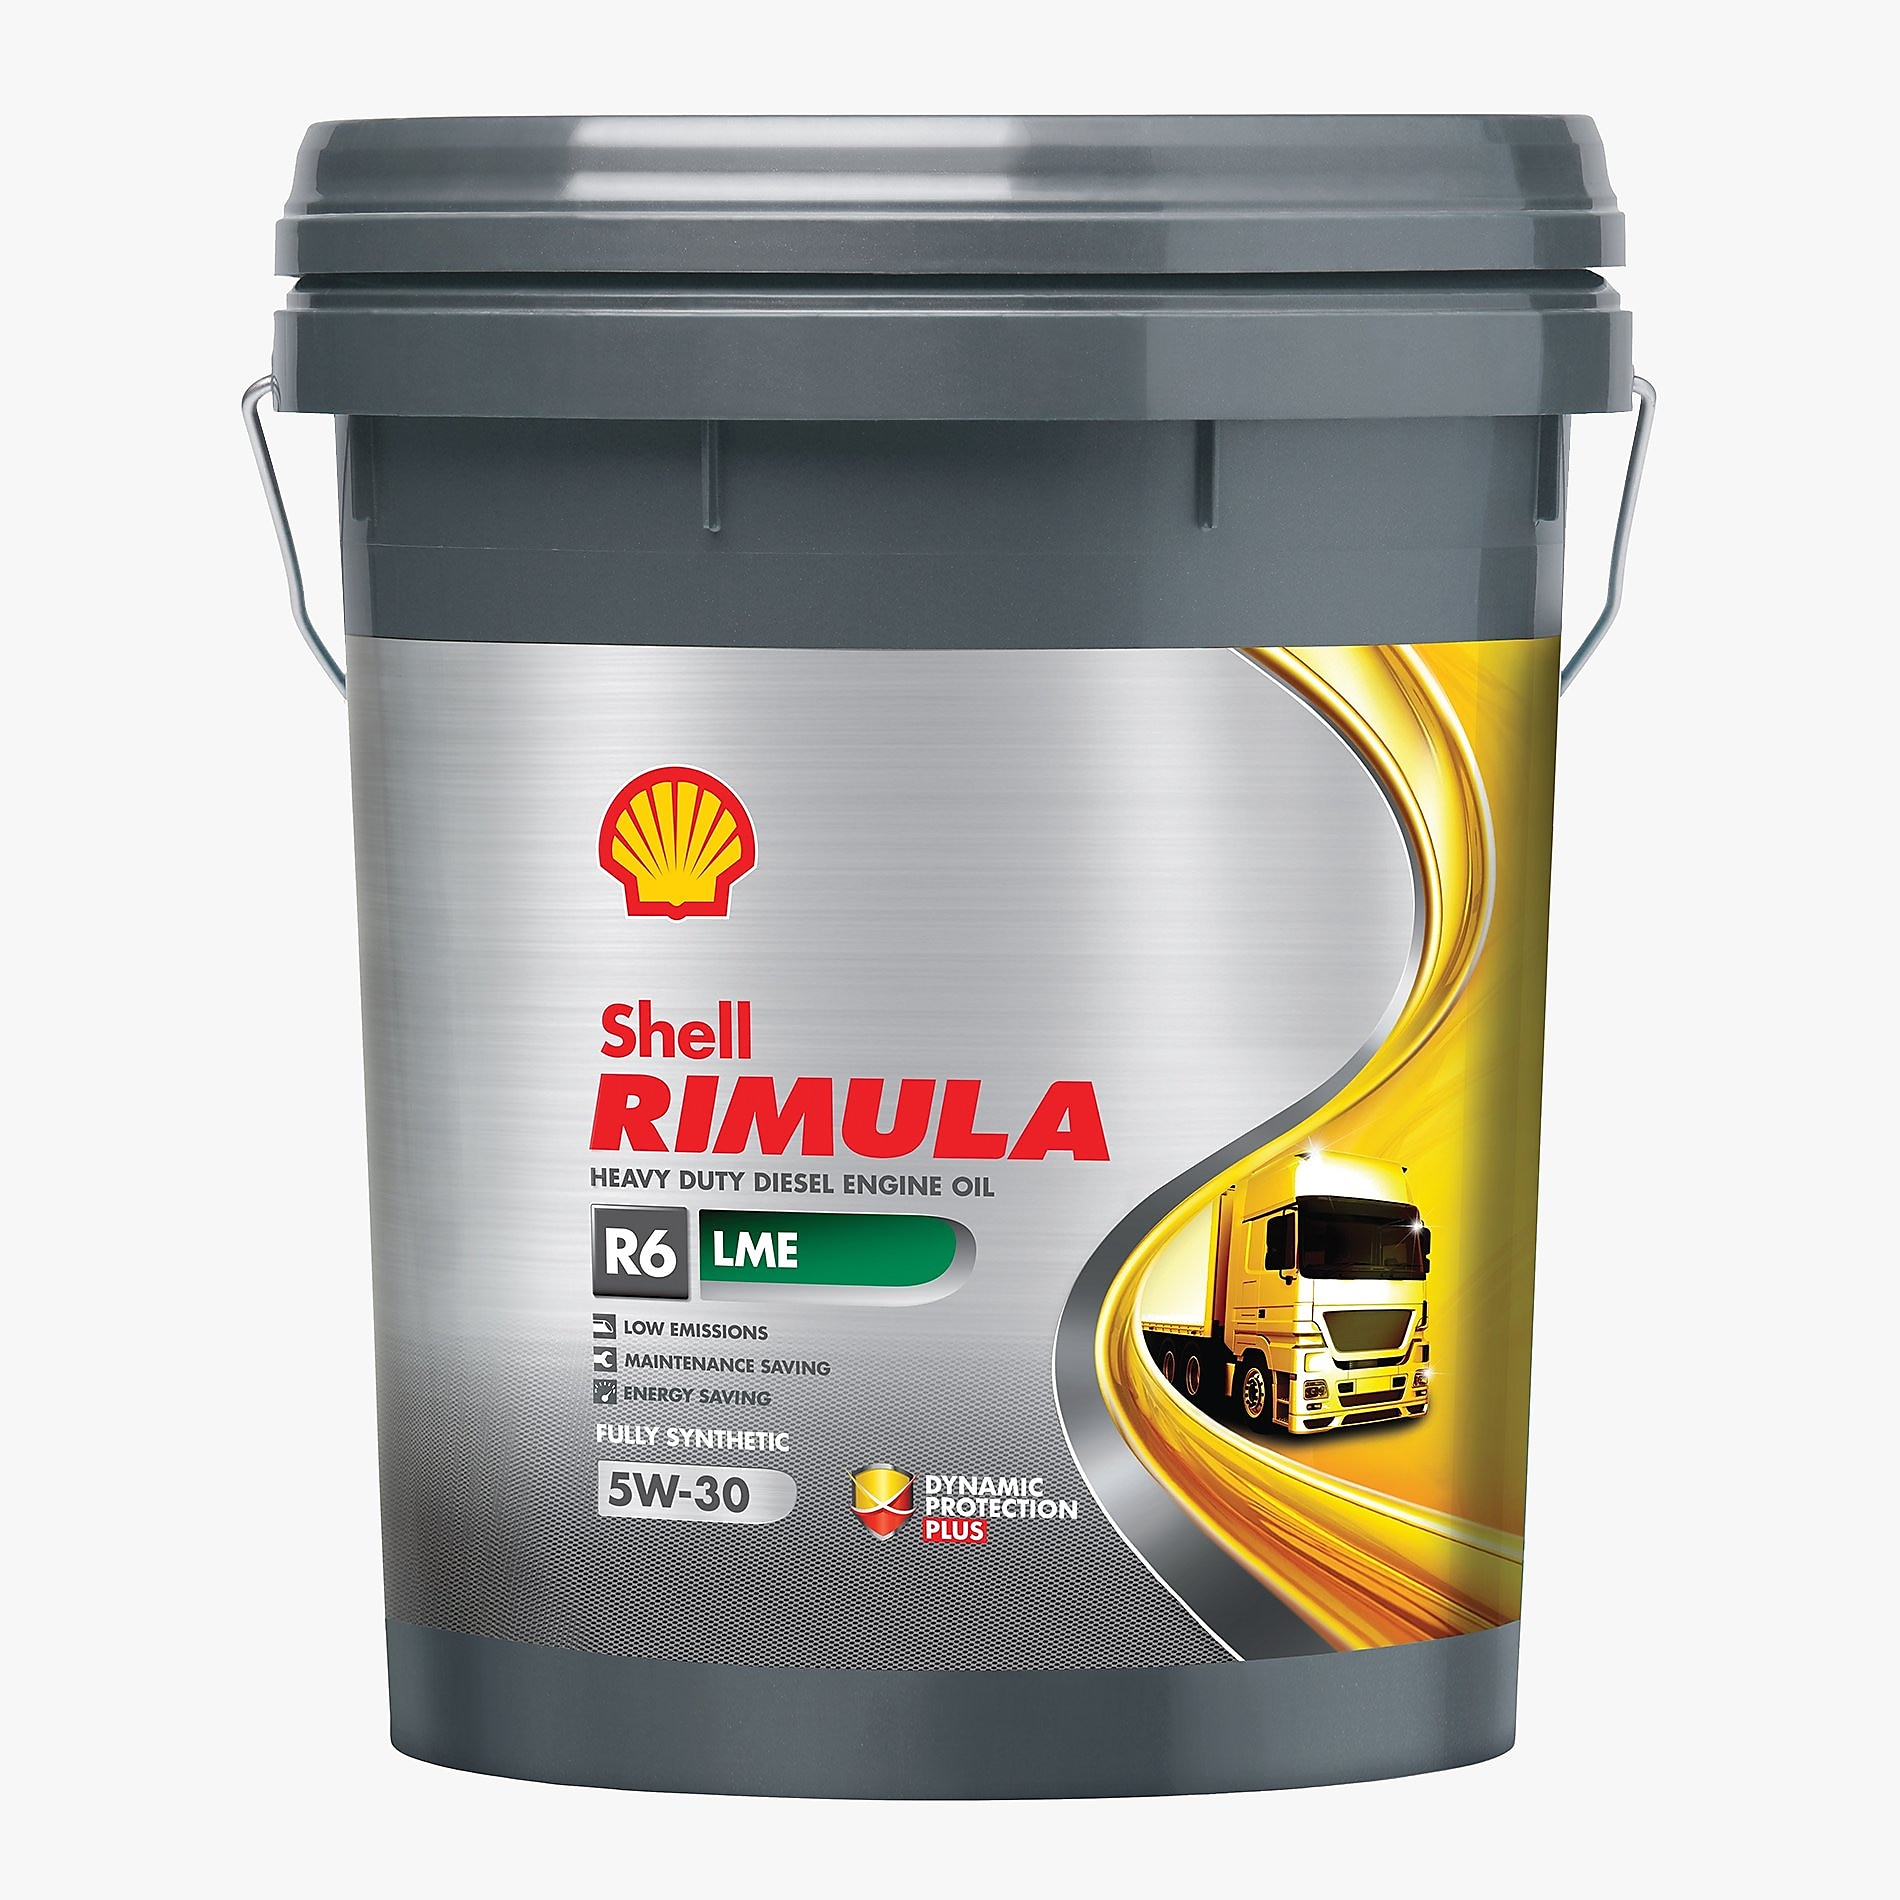 Shell Rimula R6 pack shot